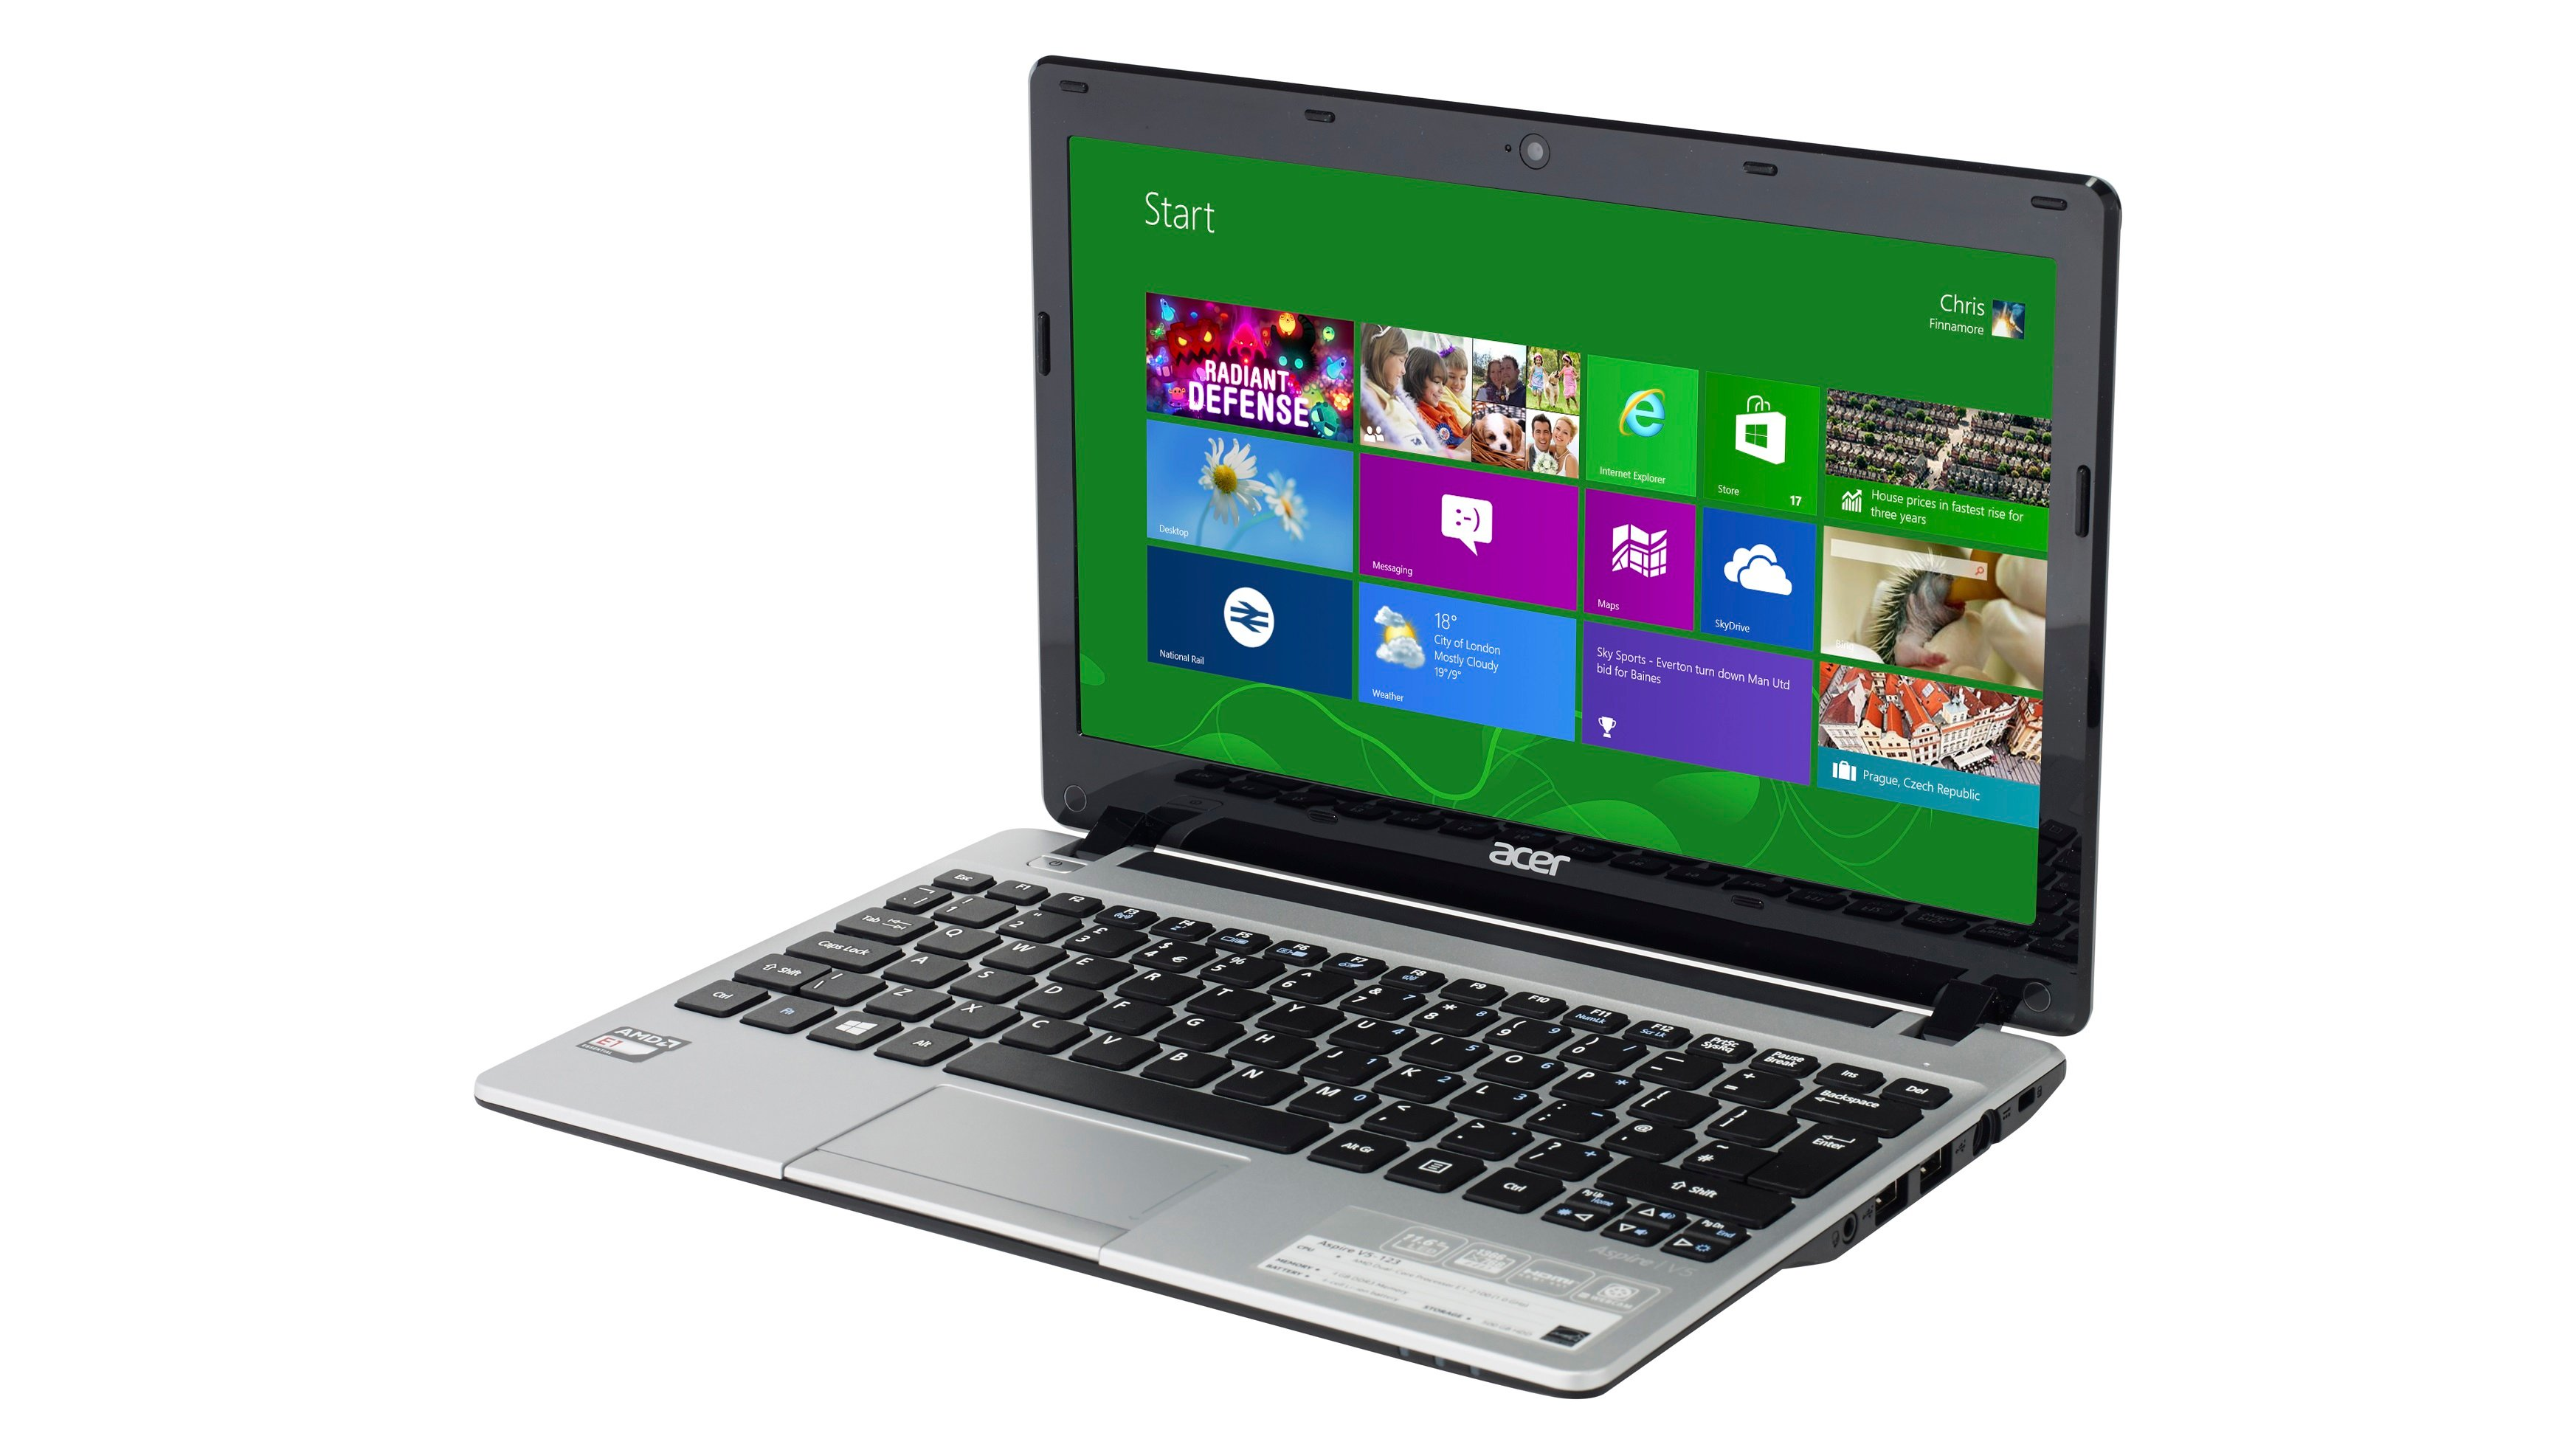 ACER TRAVELMATE 2100 TOUCHPAD WINDOWS DRIVER DOWNLOAD